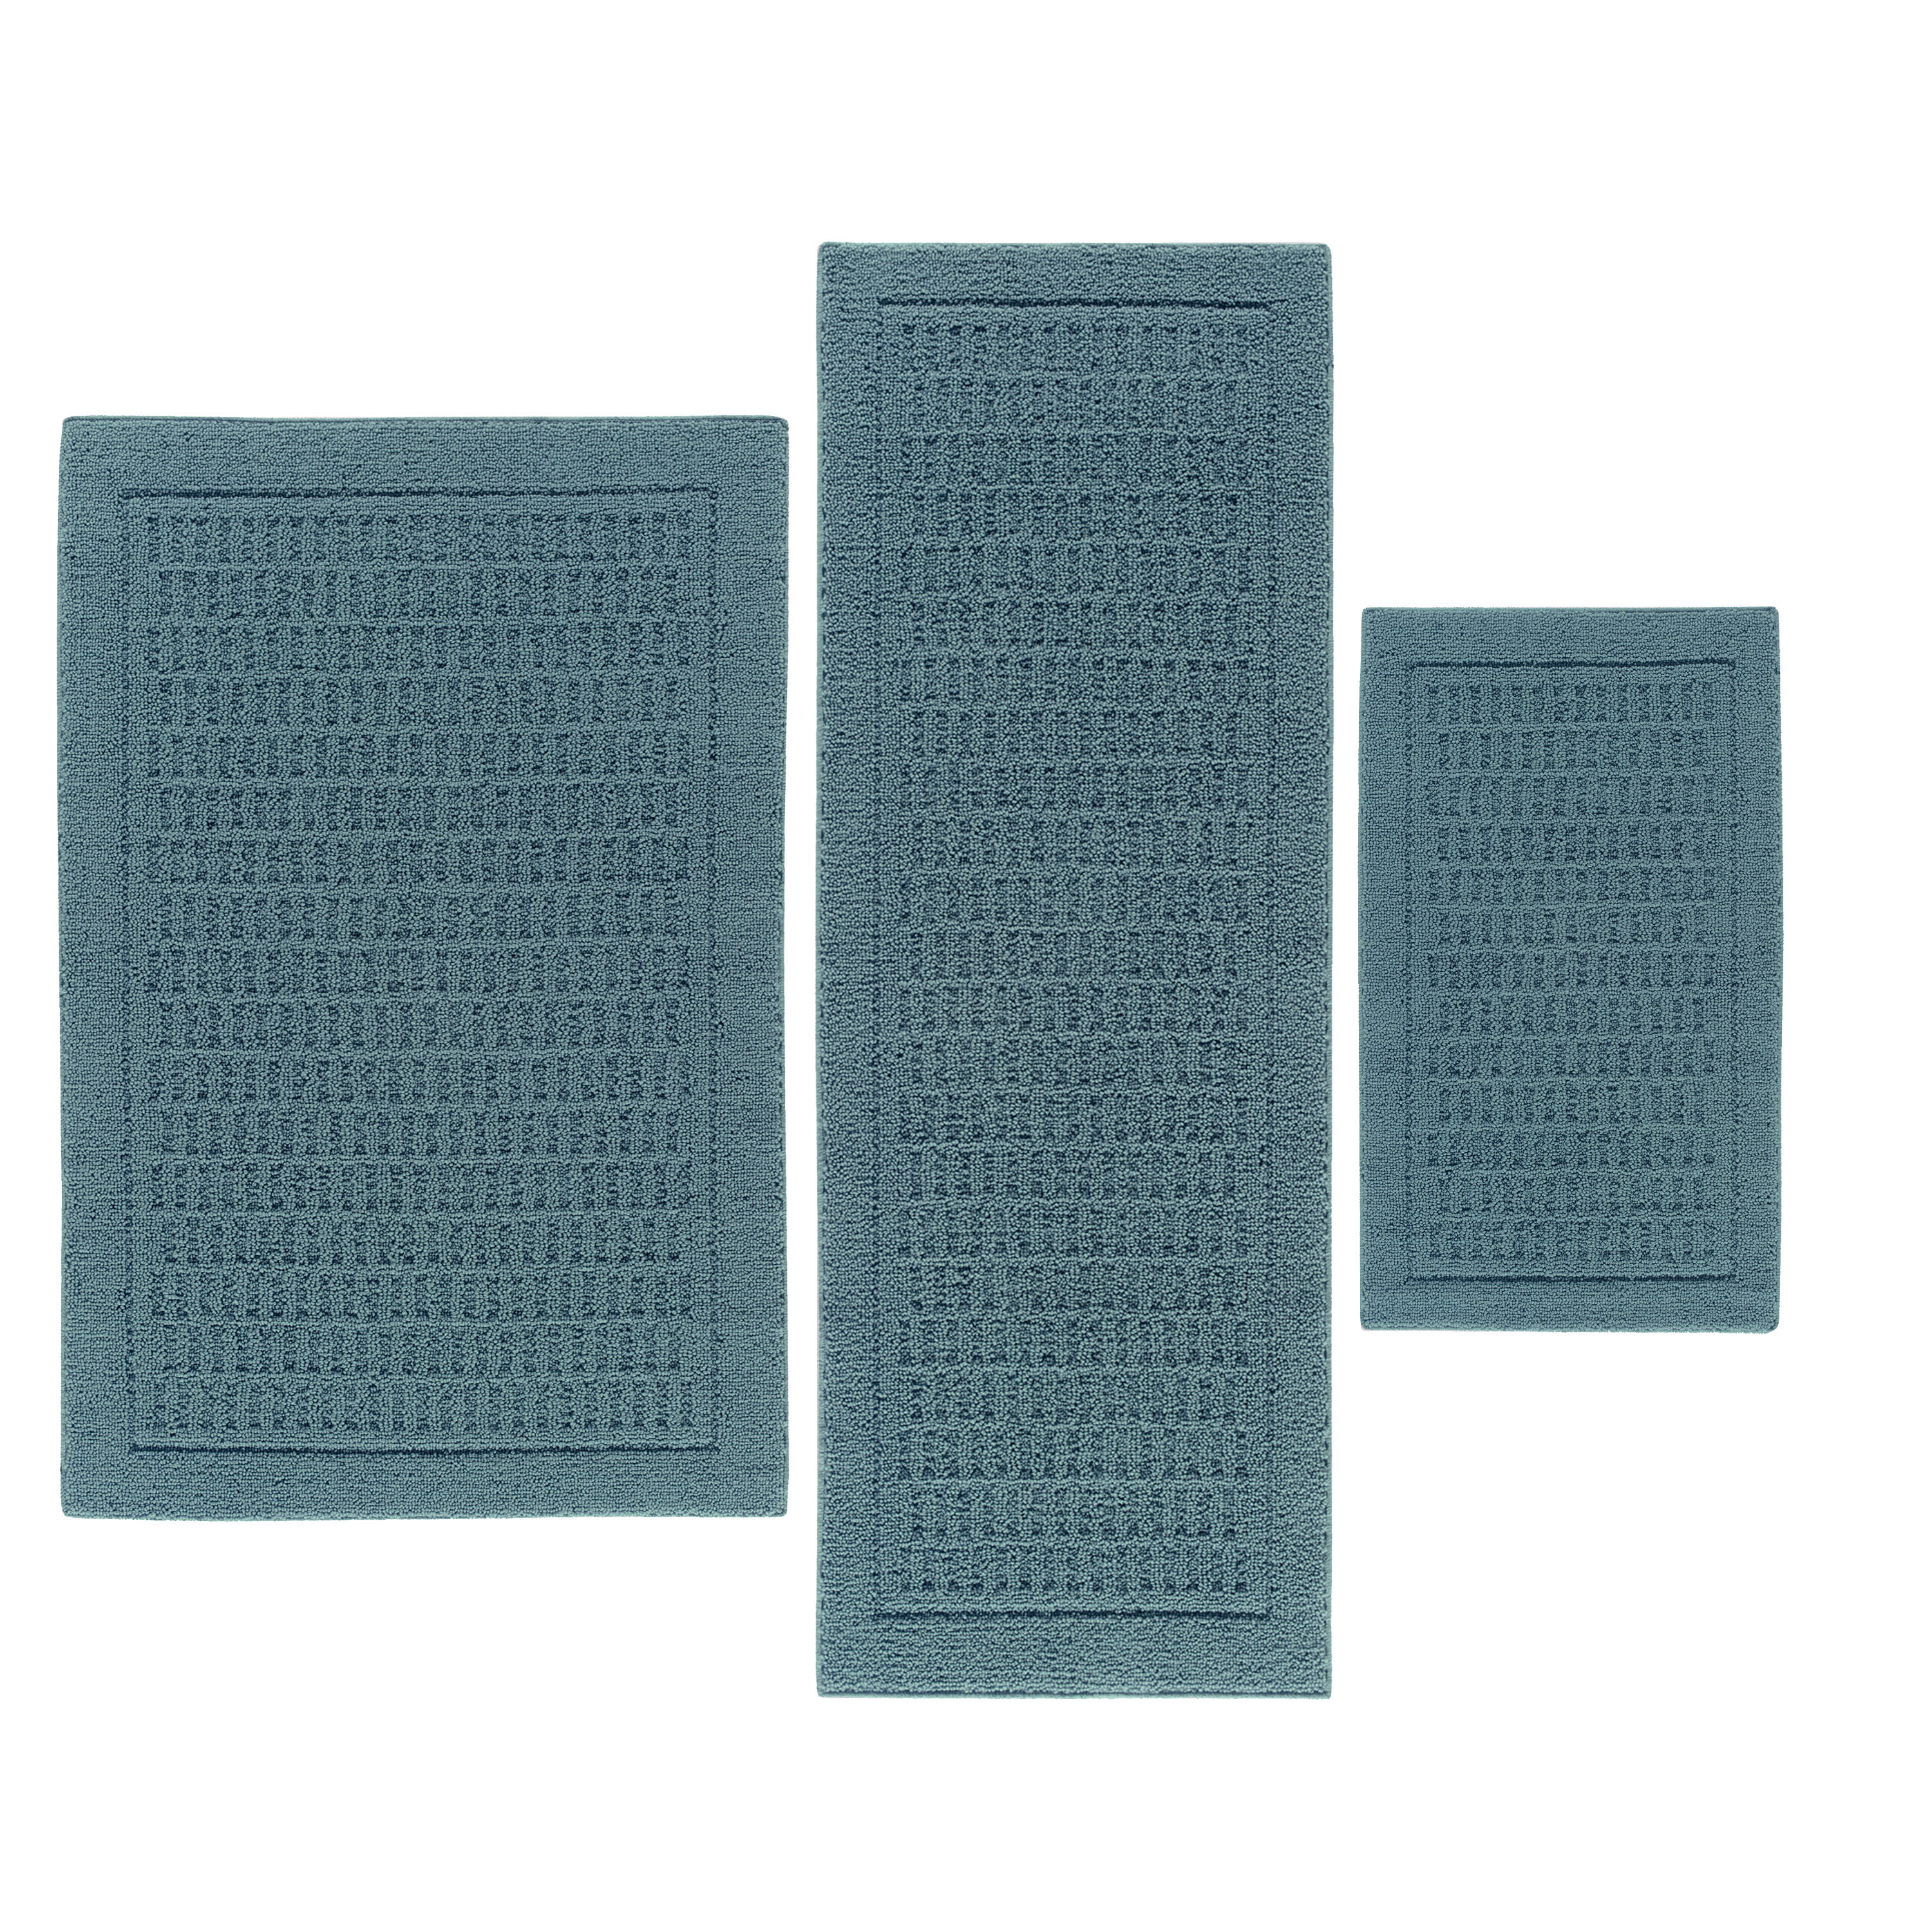 Mainstays Dylan Nylon 3-Piece Accent Rug Set, Multiple Colors